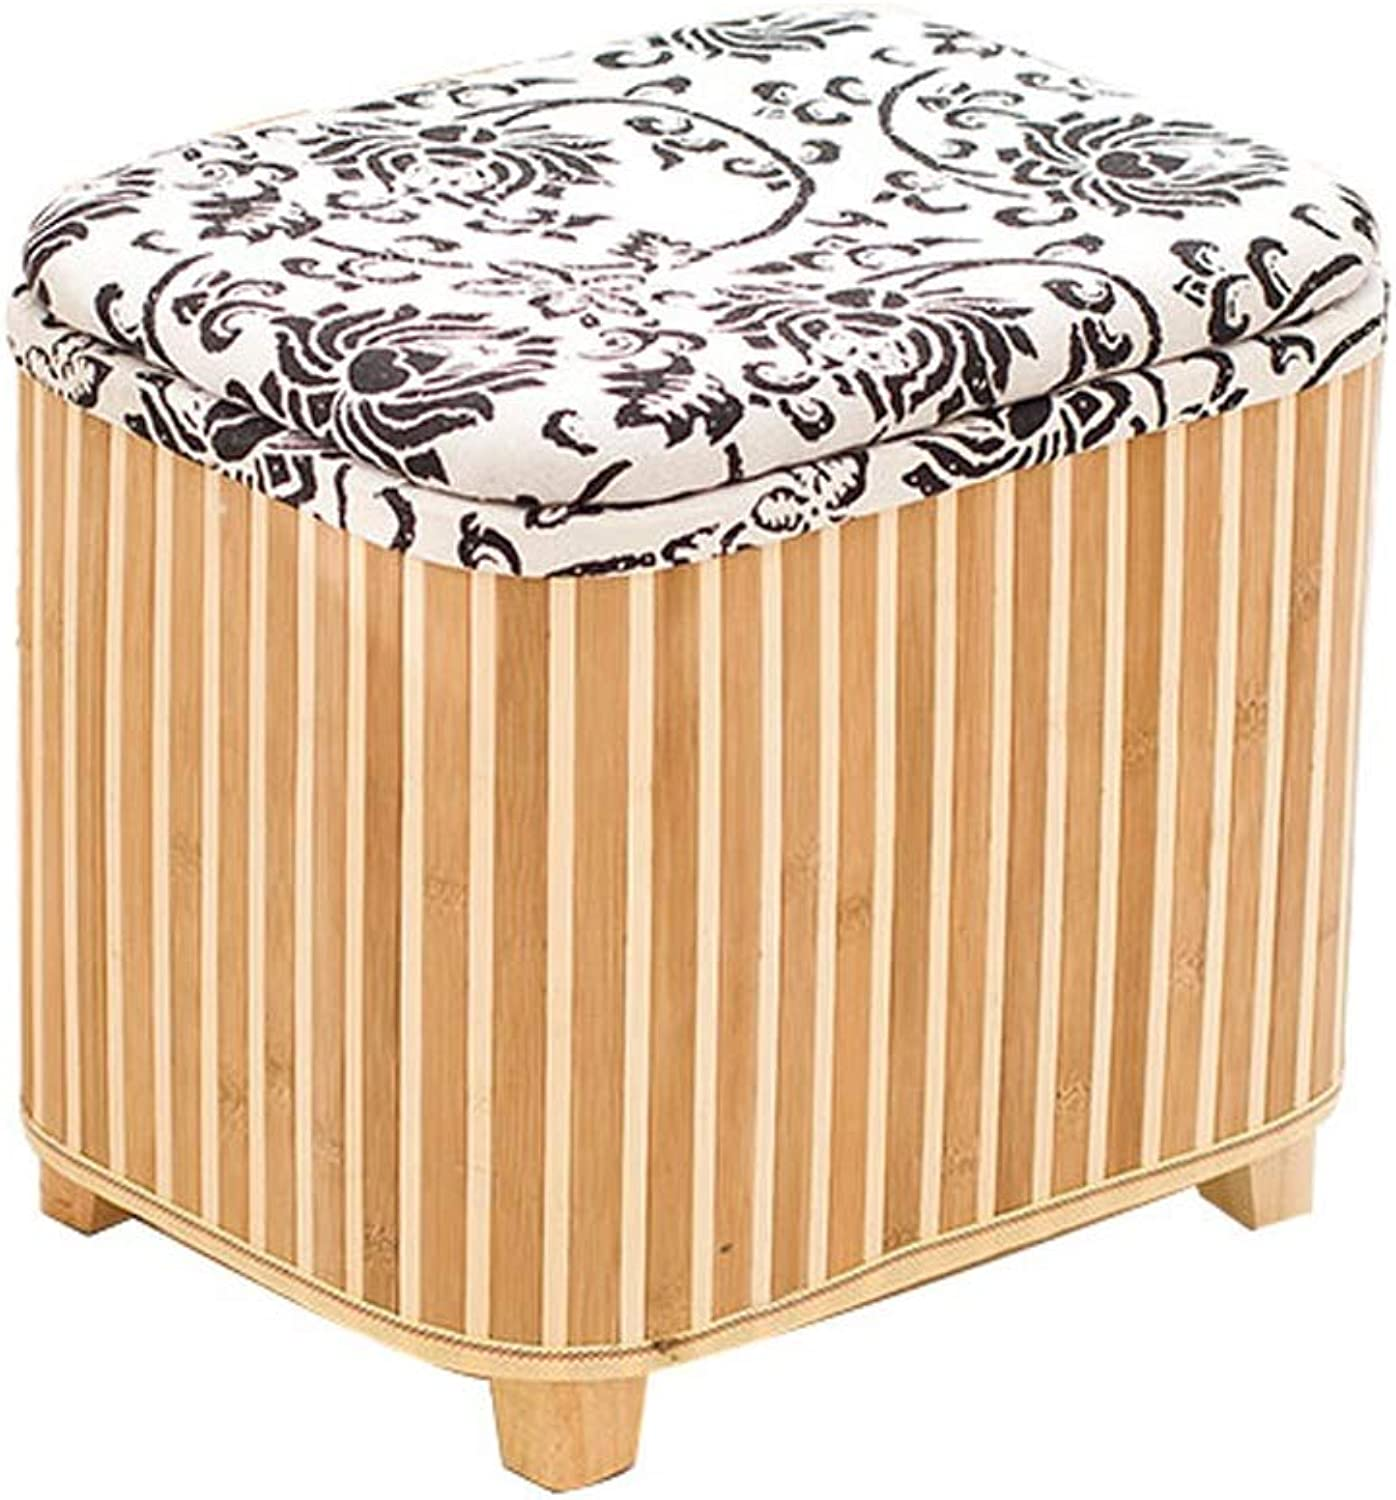 LifeX Nordic Style Flower greenical Stripes Bamboo Storage Stool Box Footstool Home Living Room Sofa Stool Hall Cotton Change shoes Bench Dressing Stool Seat Size Optional (color   L)